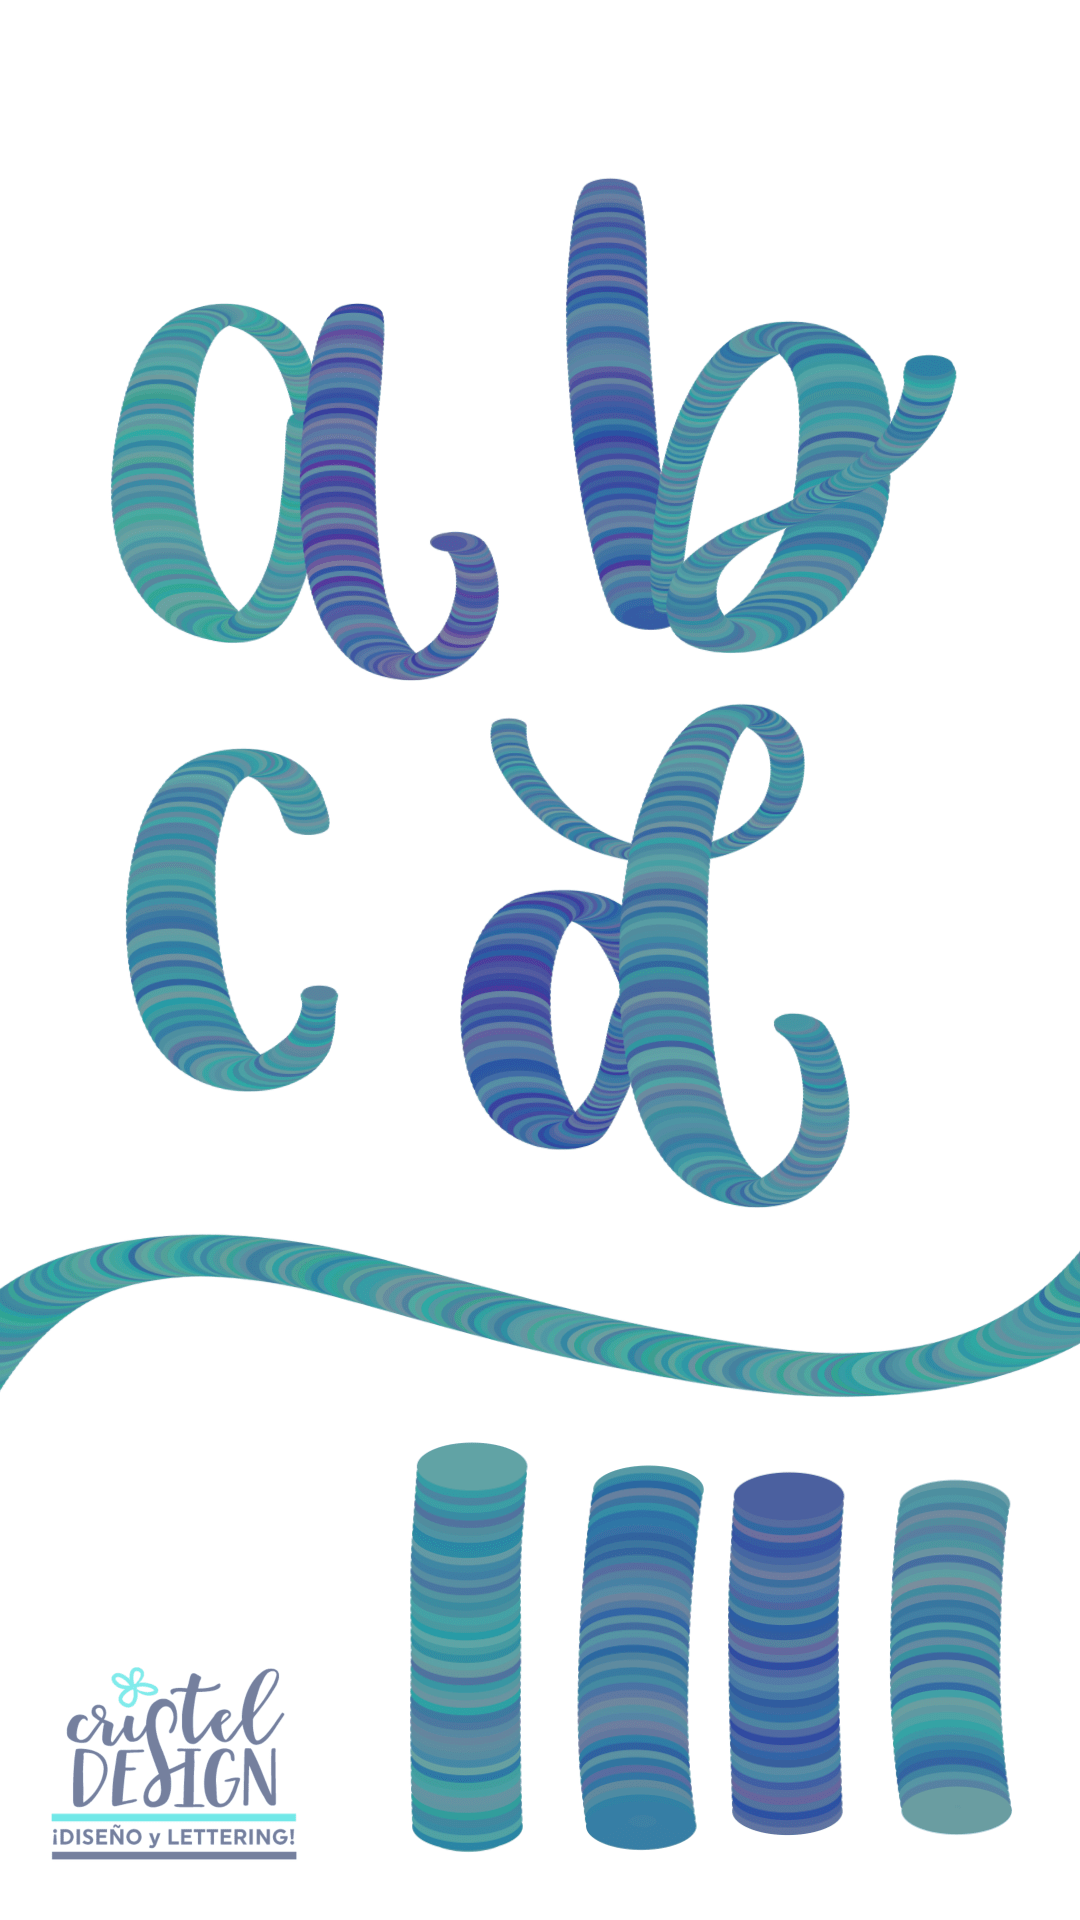 pincel-multicolor-procreate-lettering-cristel-design